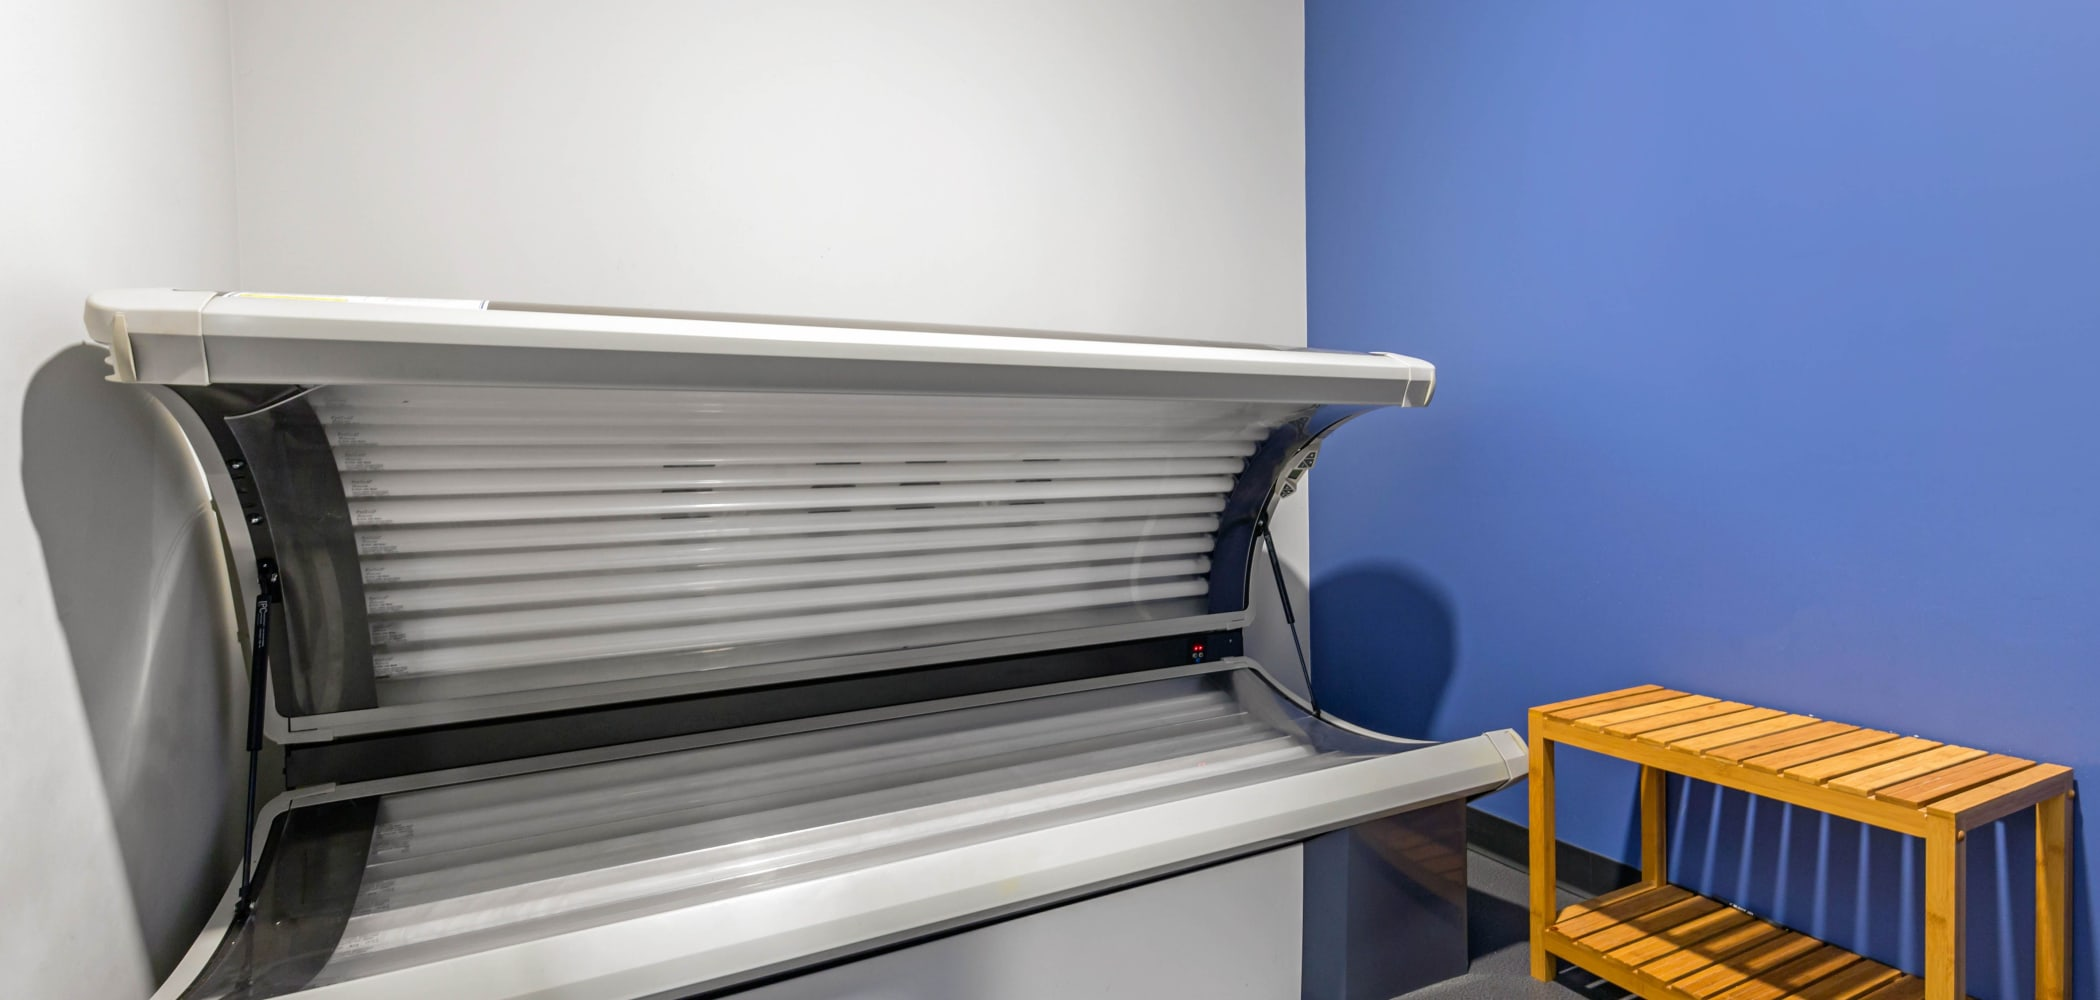 Tanning bed at West Quad in Champaign, Illinois